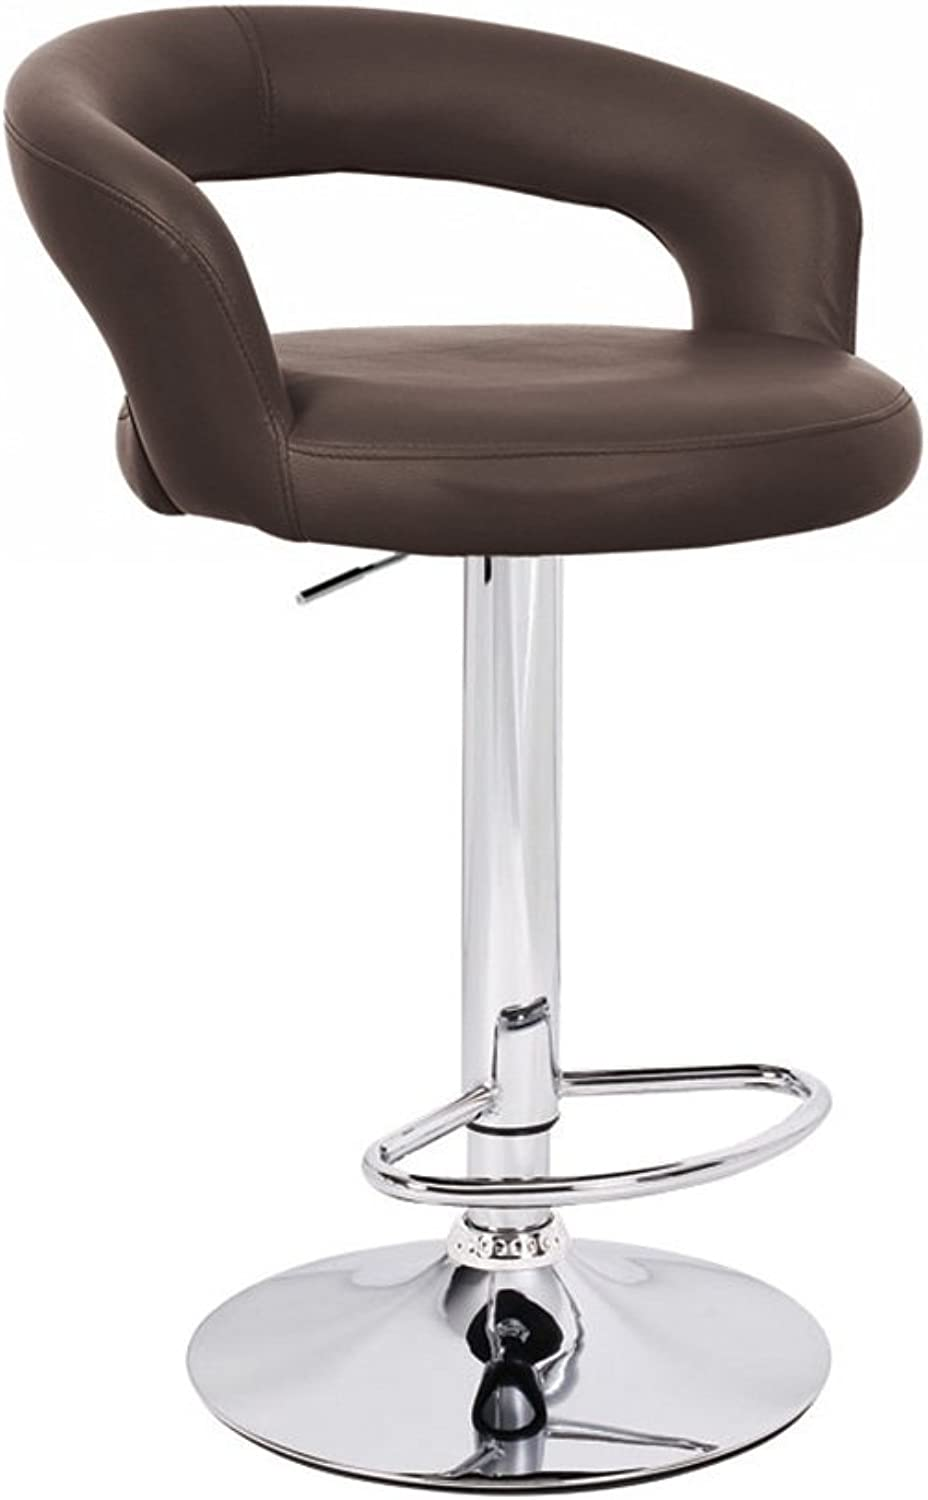 Halo Leather Contemporary Adjustable Barstool - Brown